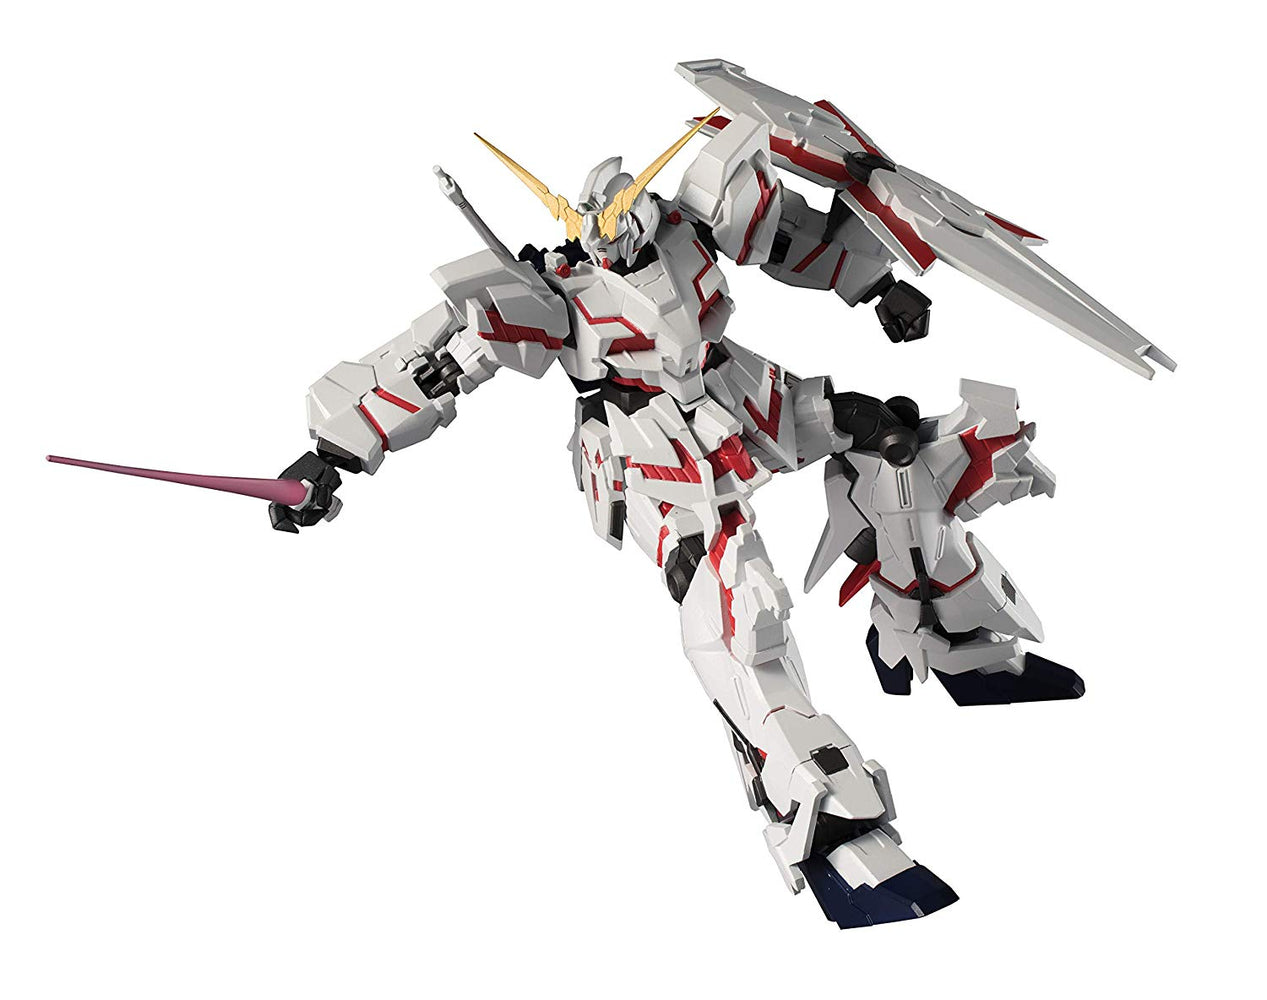 Bandai Tamashii Nations: Gundam Universe - Mobile Suit Gundam RX-0 Unicorn Gundam Action Figure